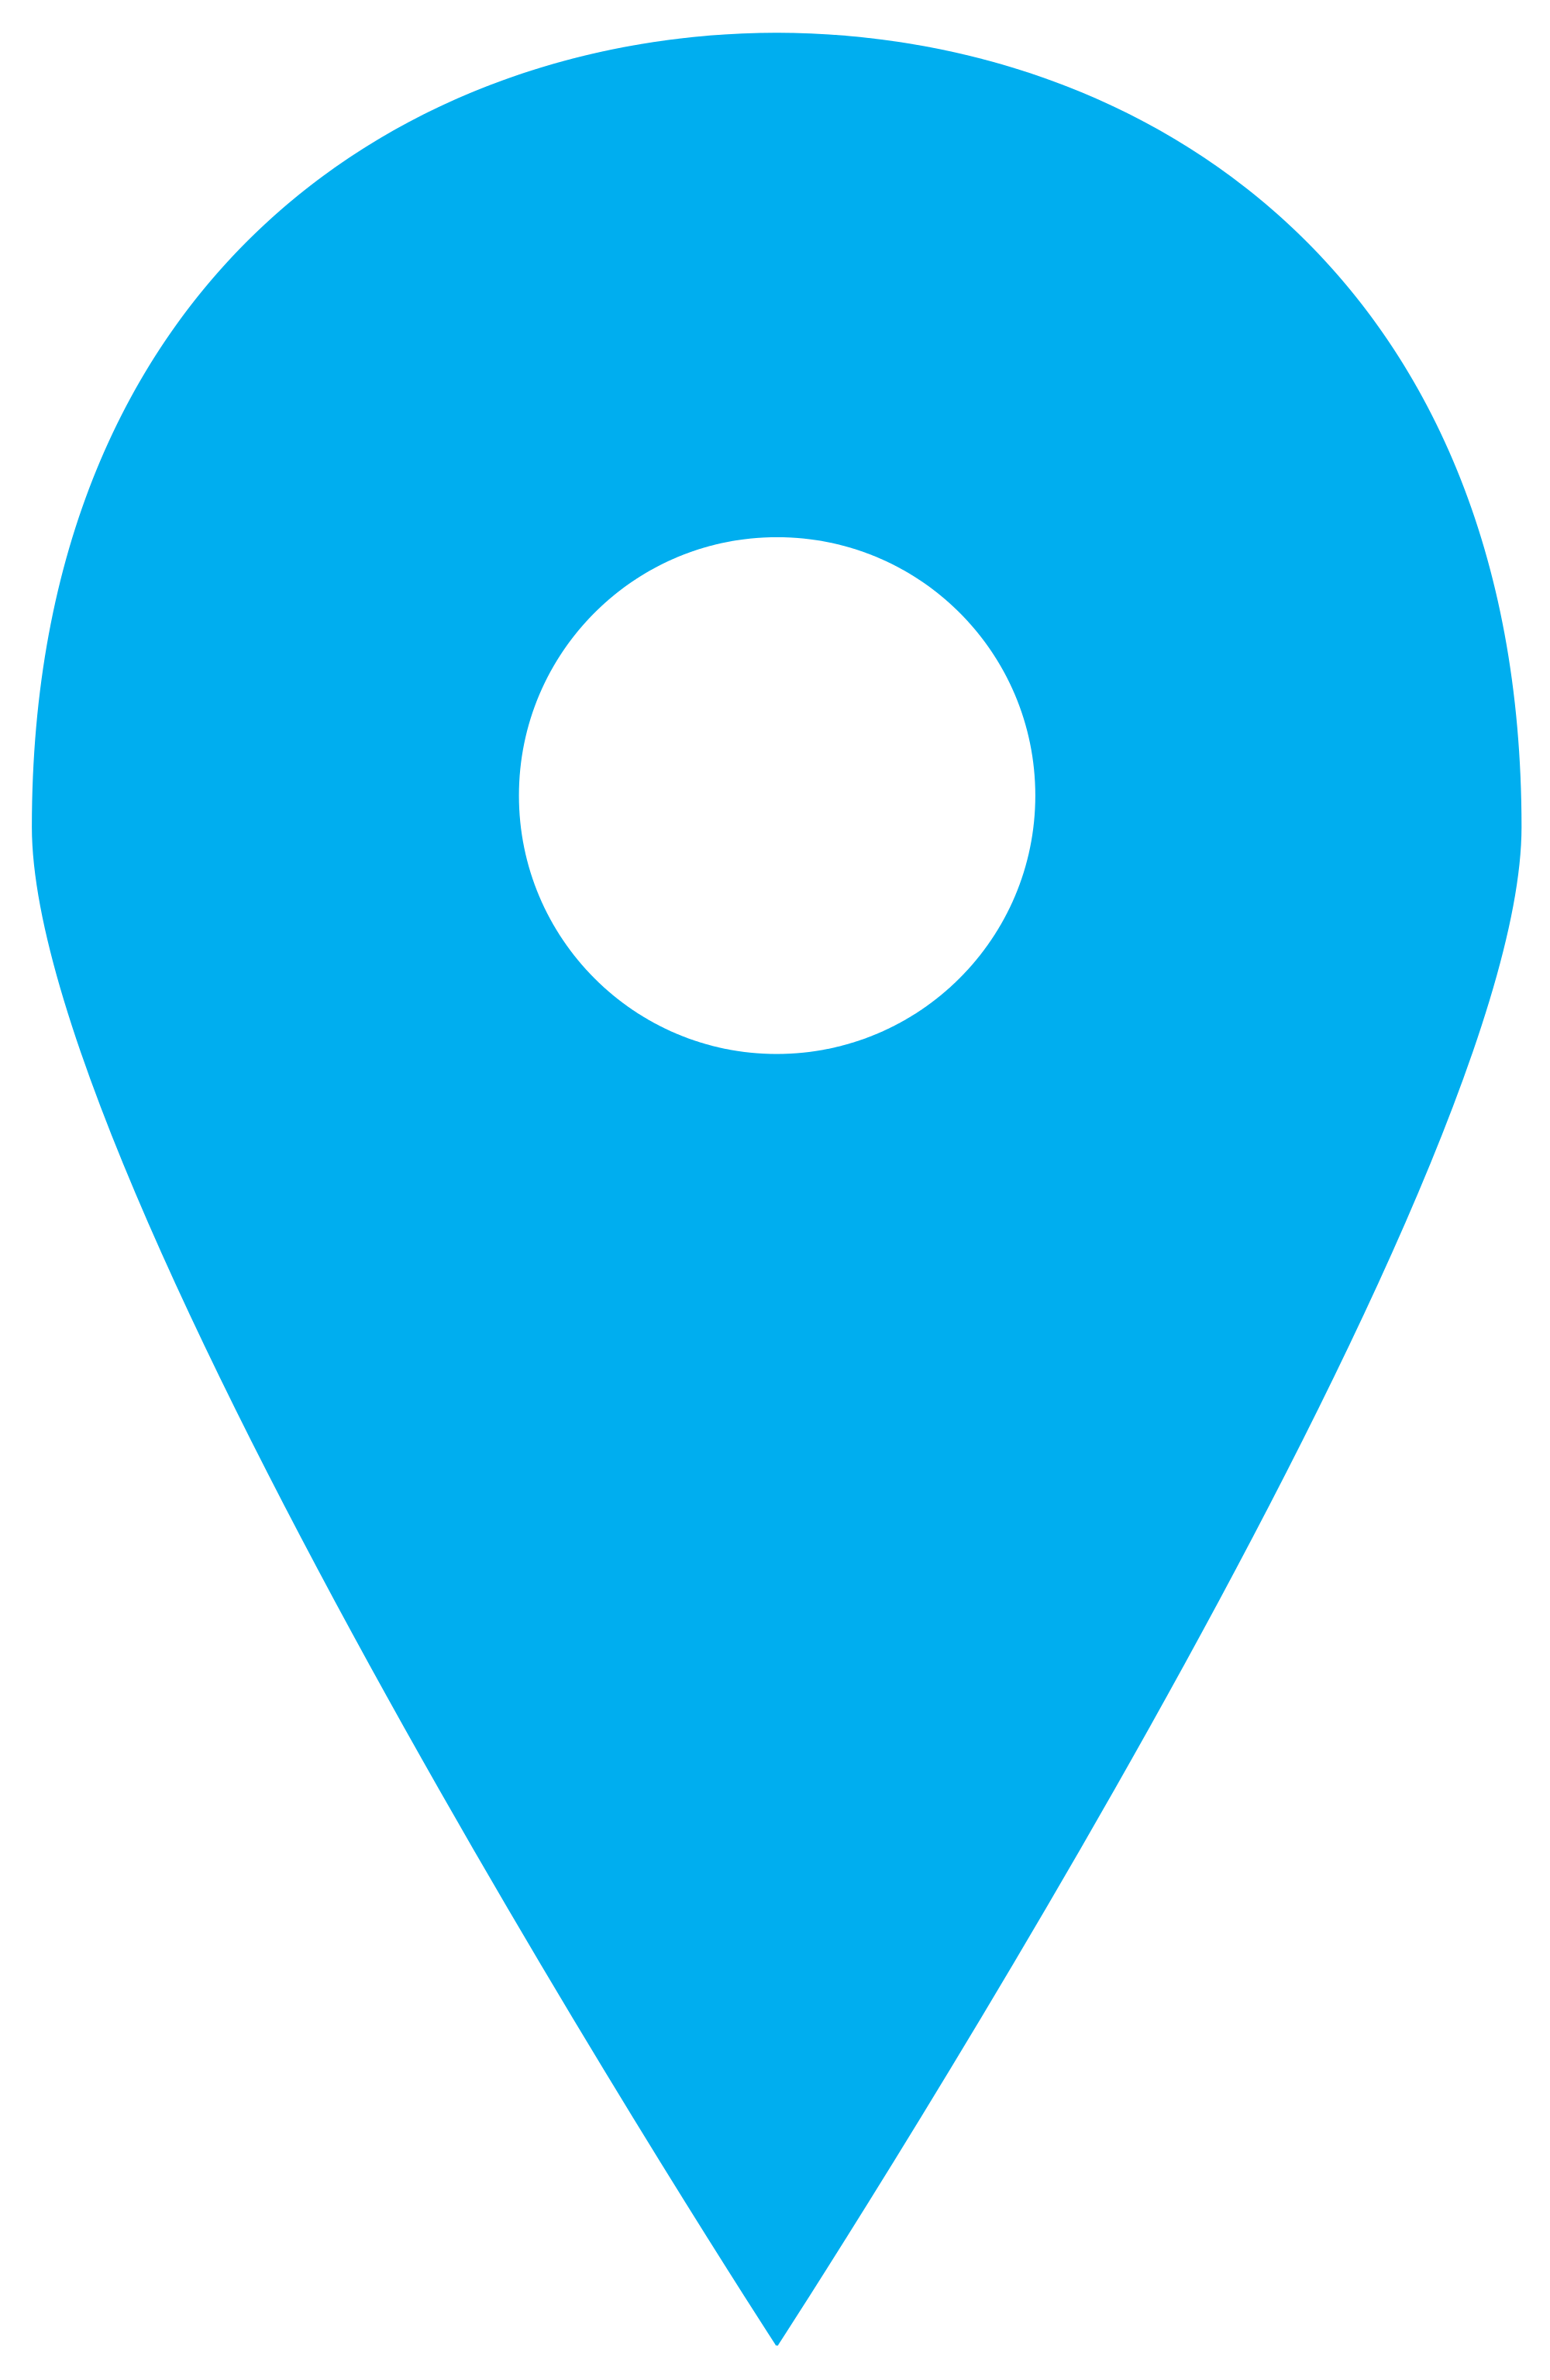 Map marker png transparent. Markers clipart blue